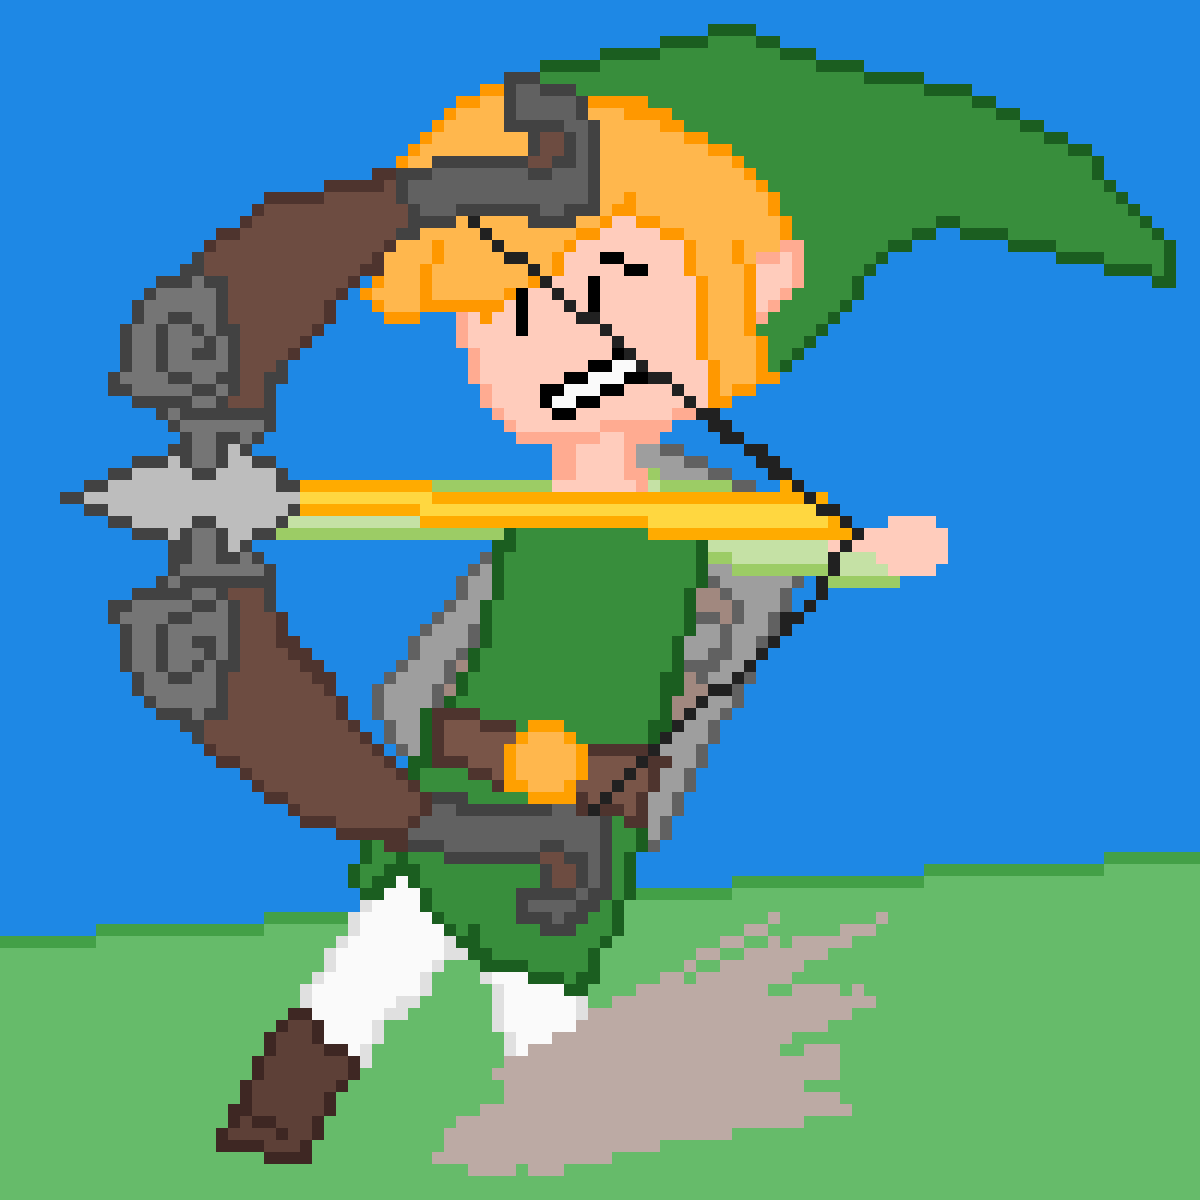 Toon Link by TryingStuffOut